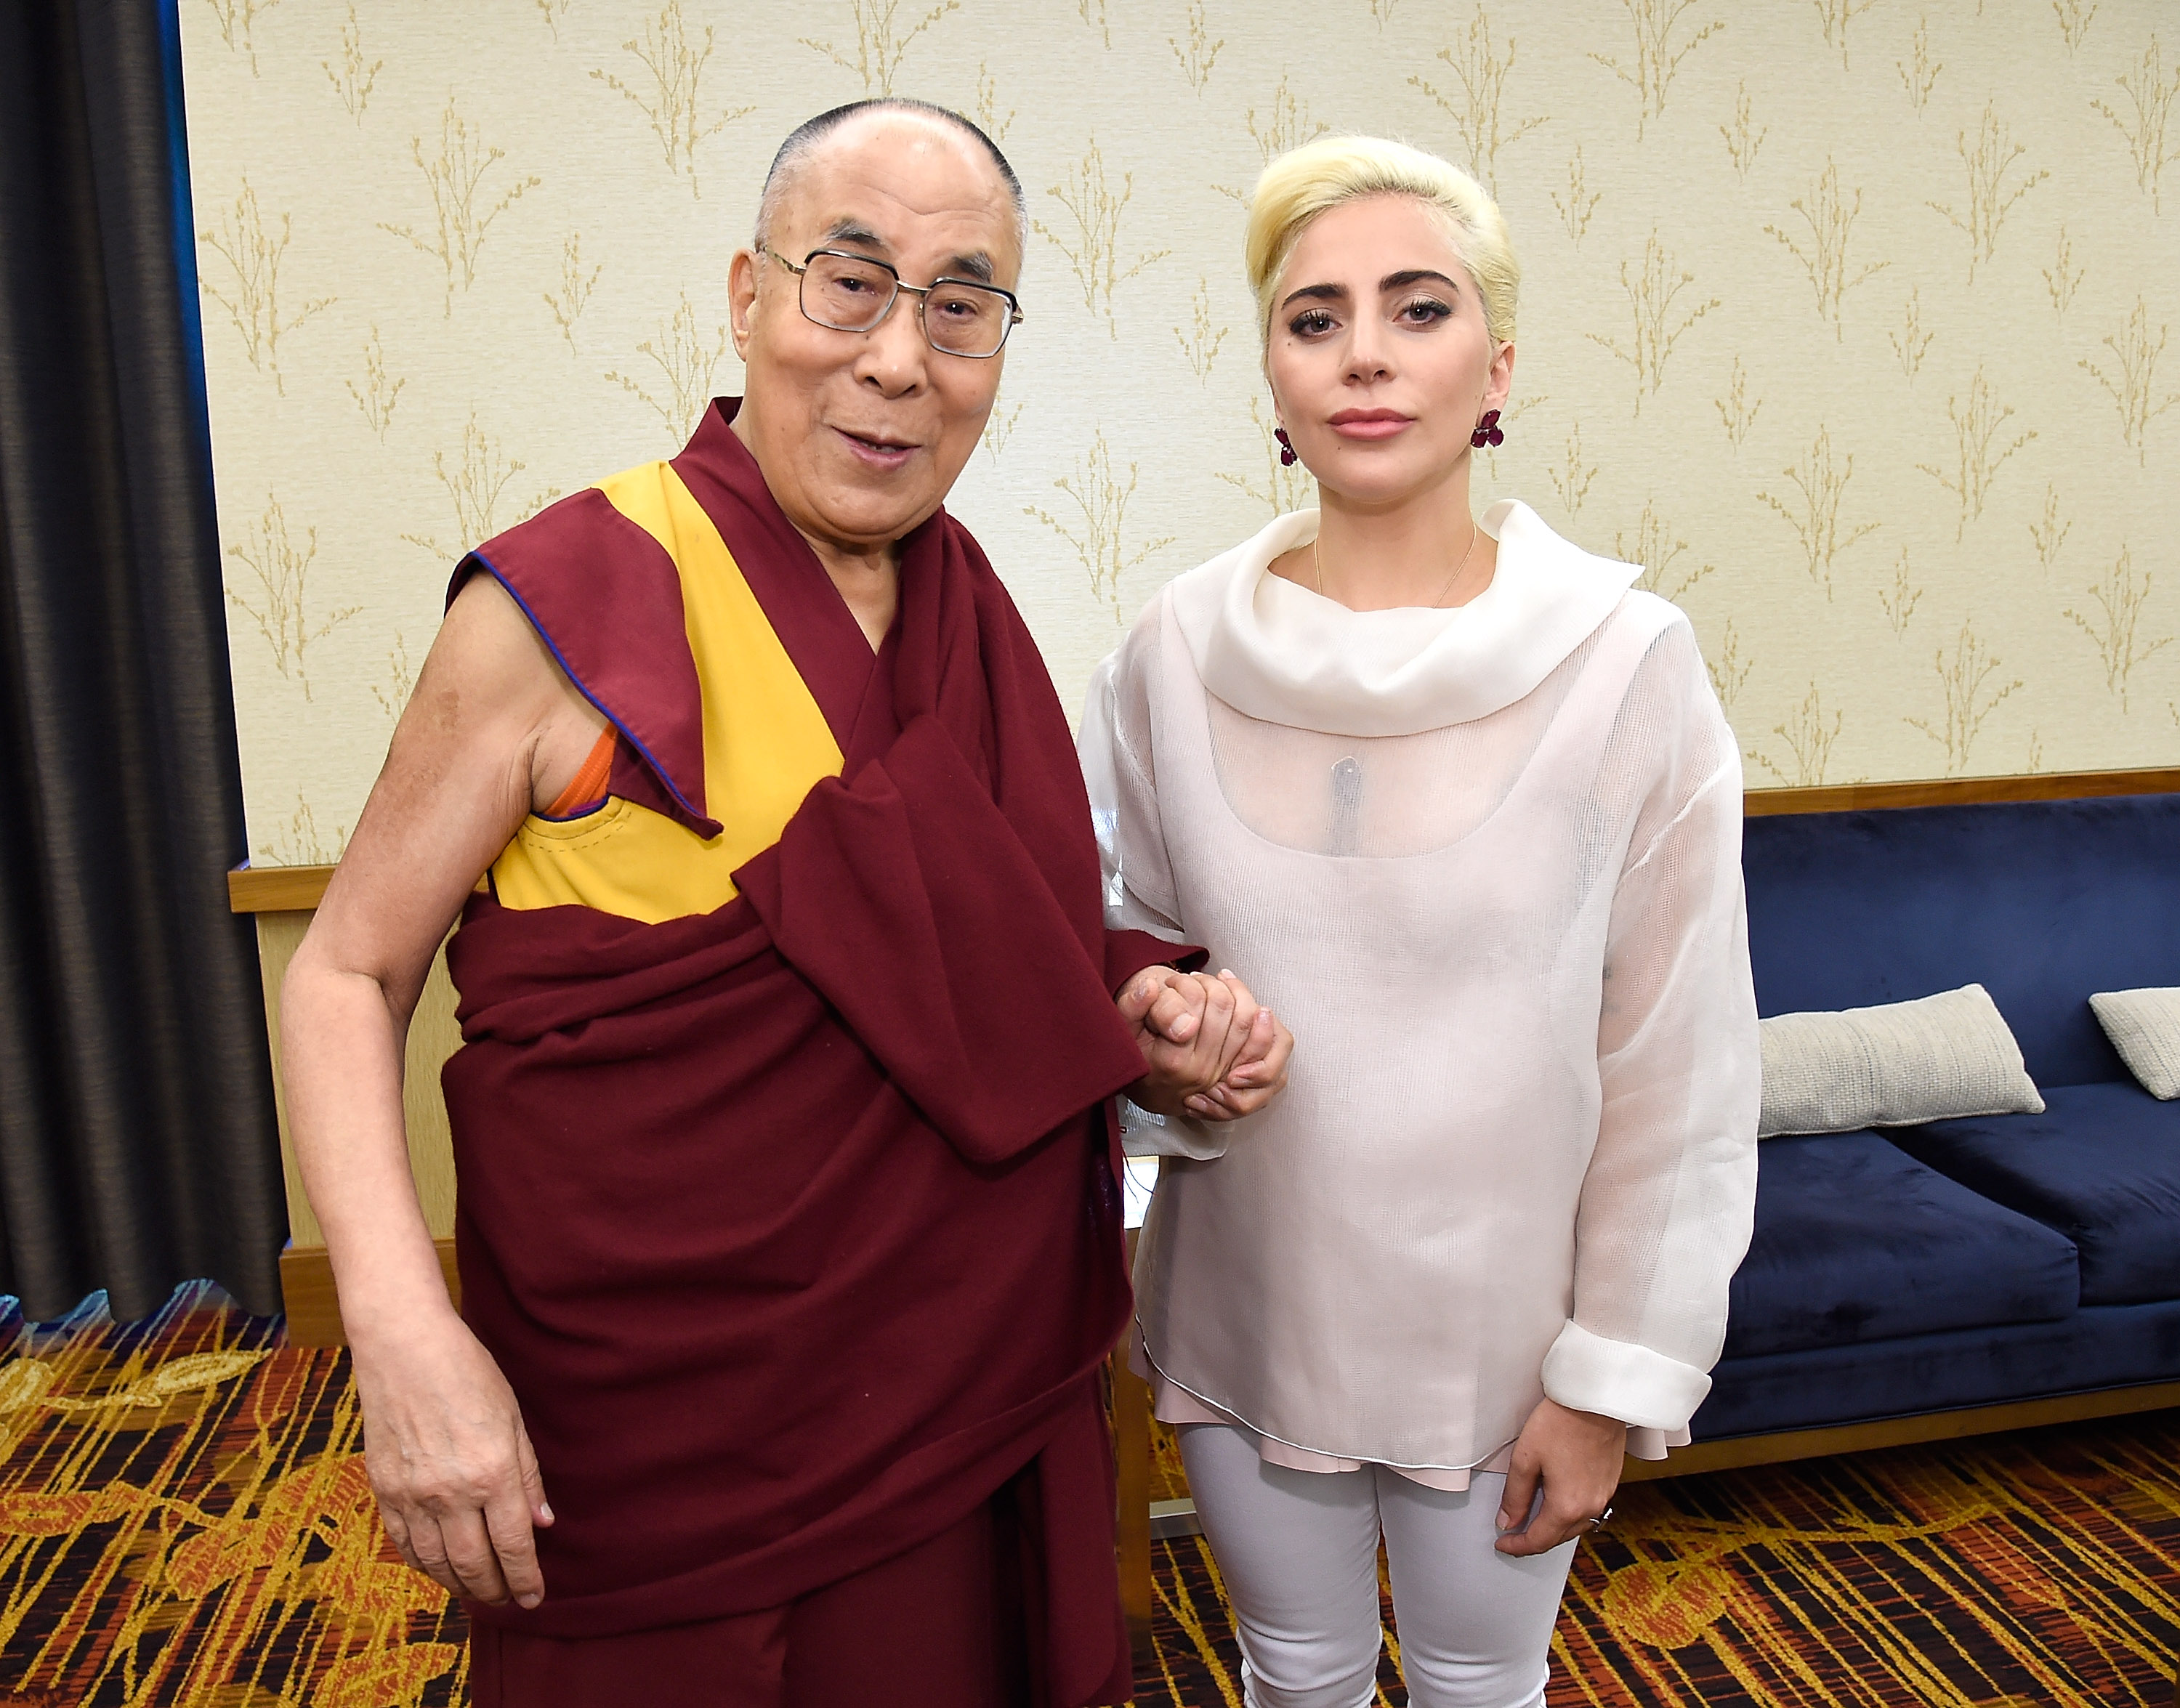 Lady Gaga joins the Dalai Lama to speak about kindness to the U.S. Mayors' Conference at JW Marriott in Indianapolis on June 26, 2016